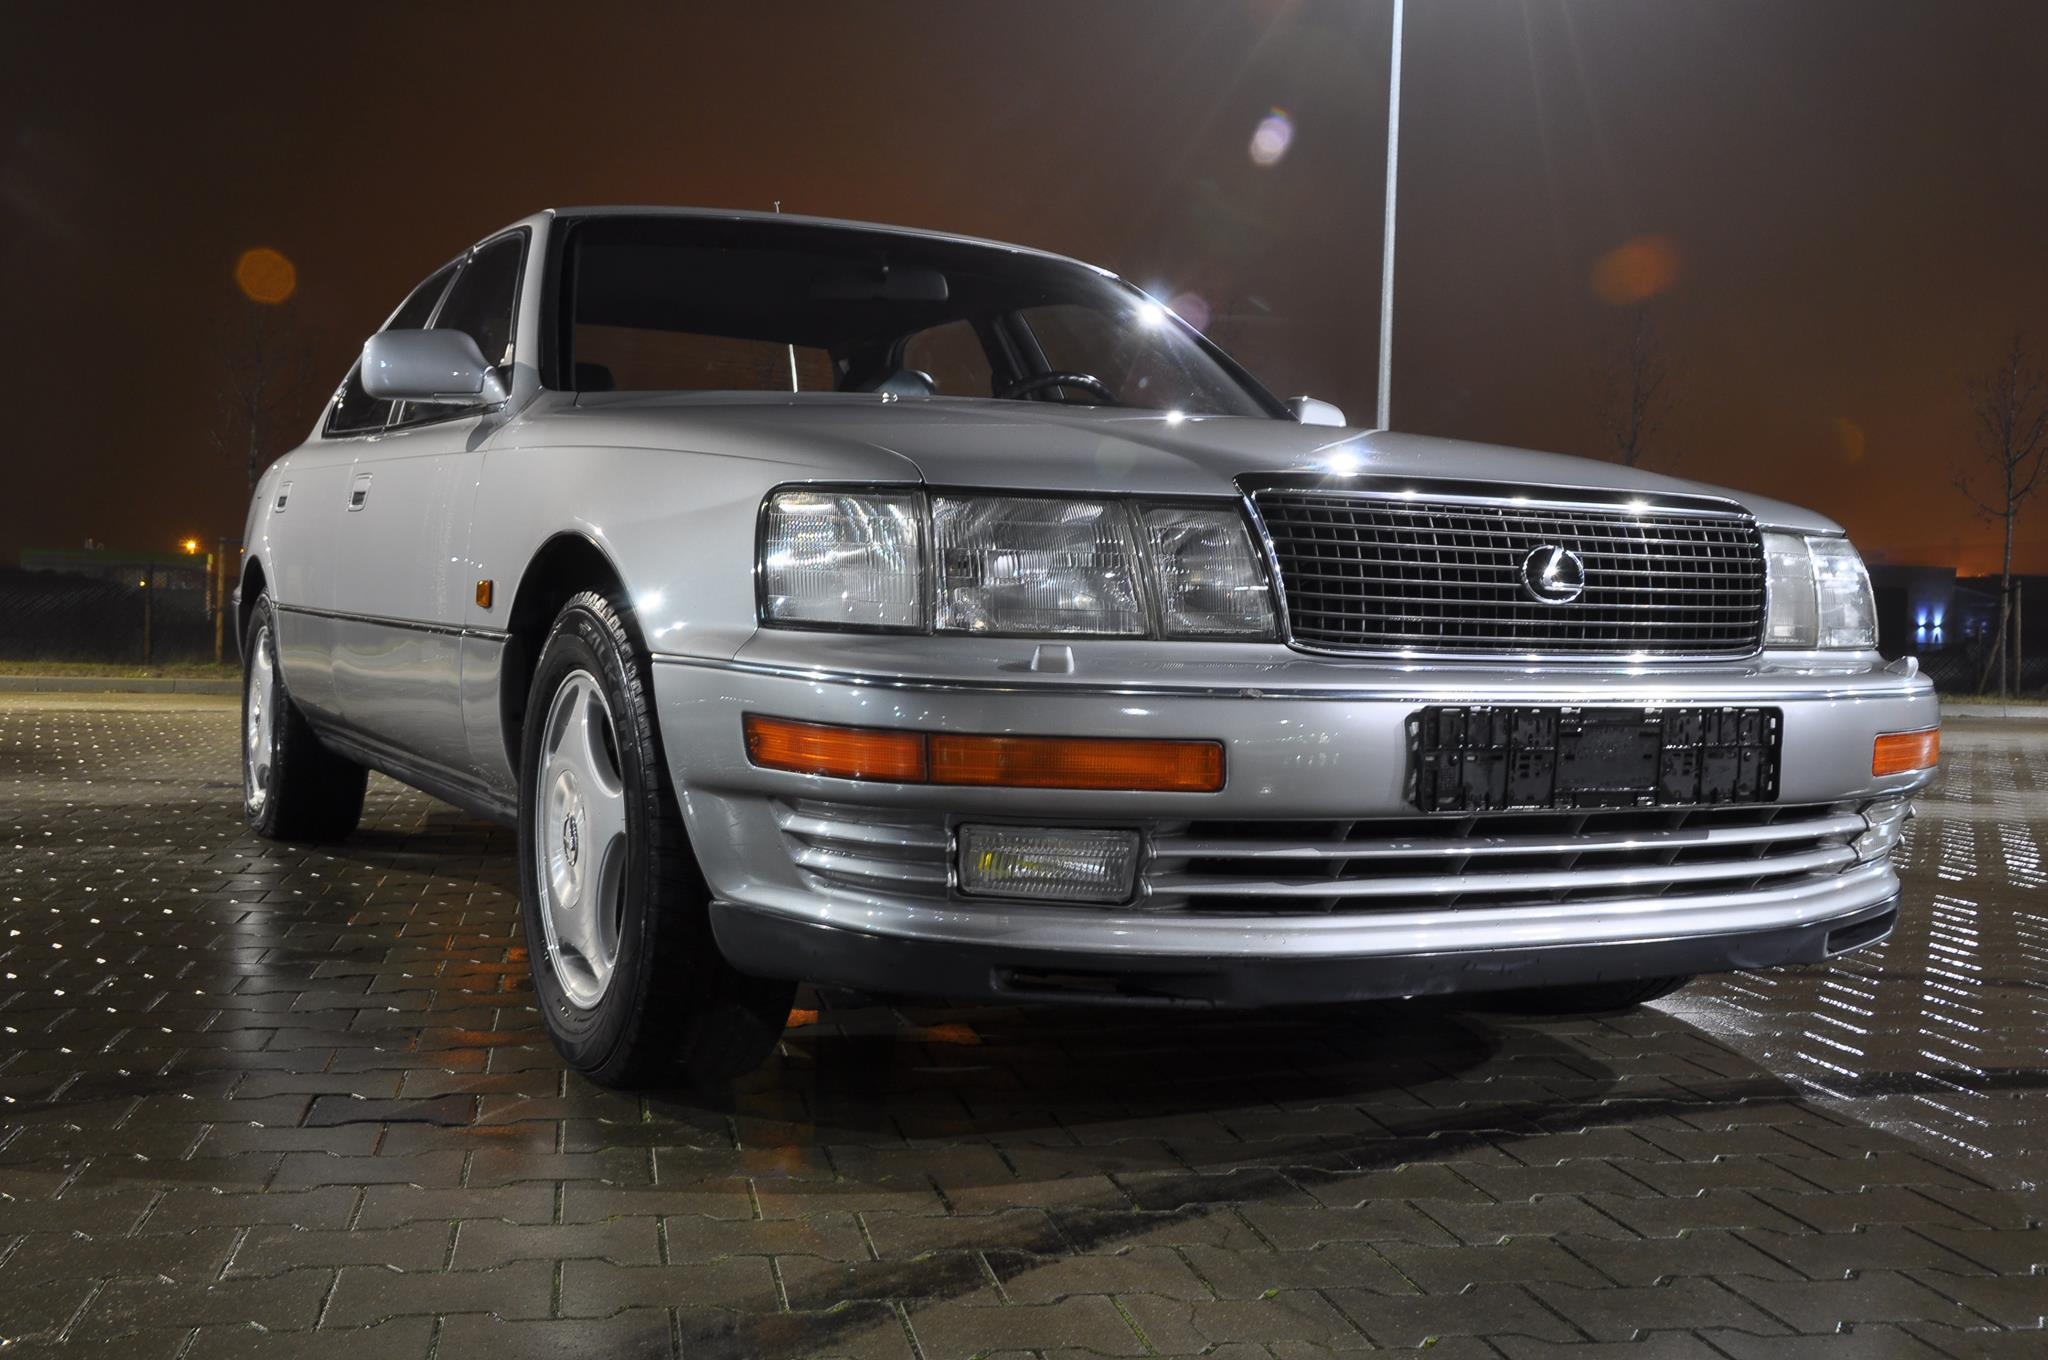 lexus ls 400 wallpapers images photos pictures backgrounds